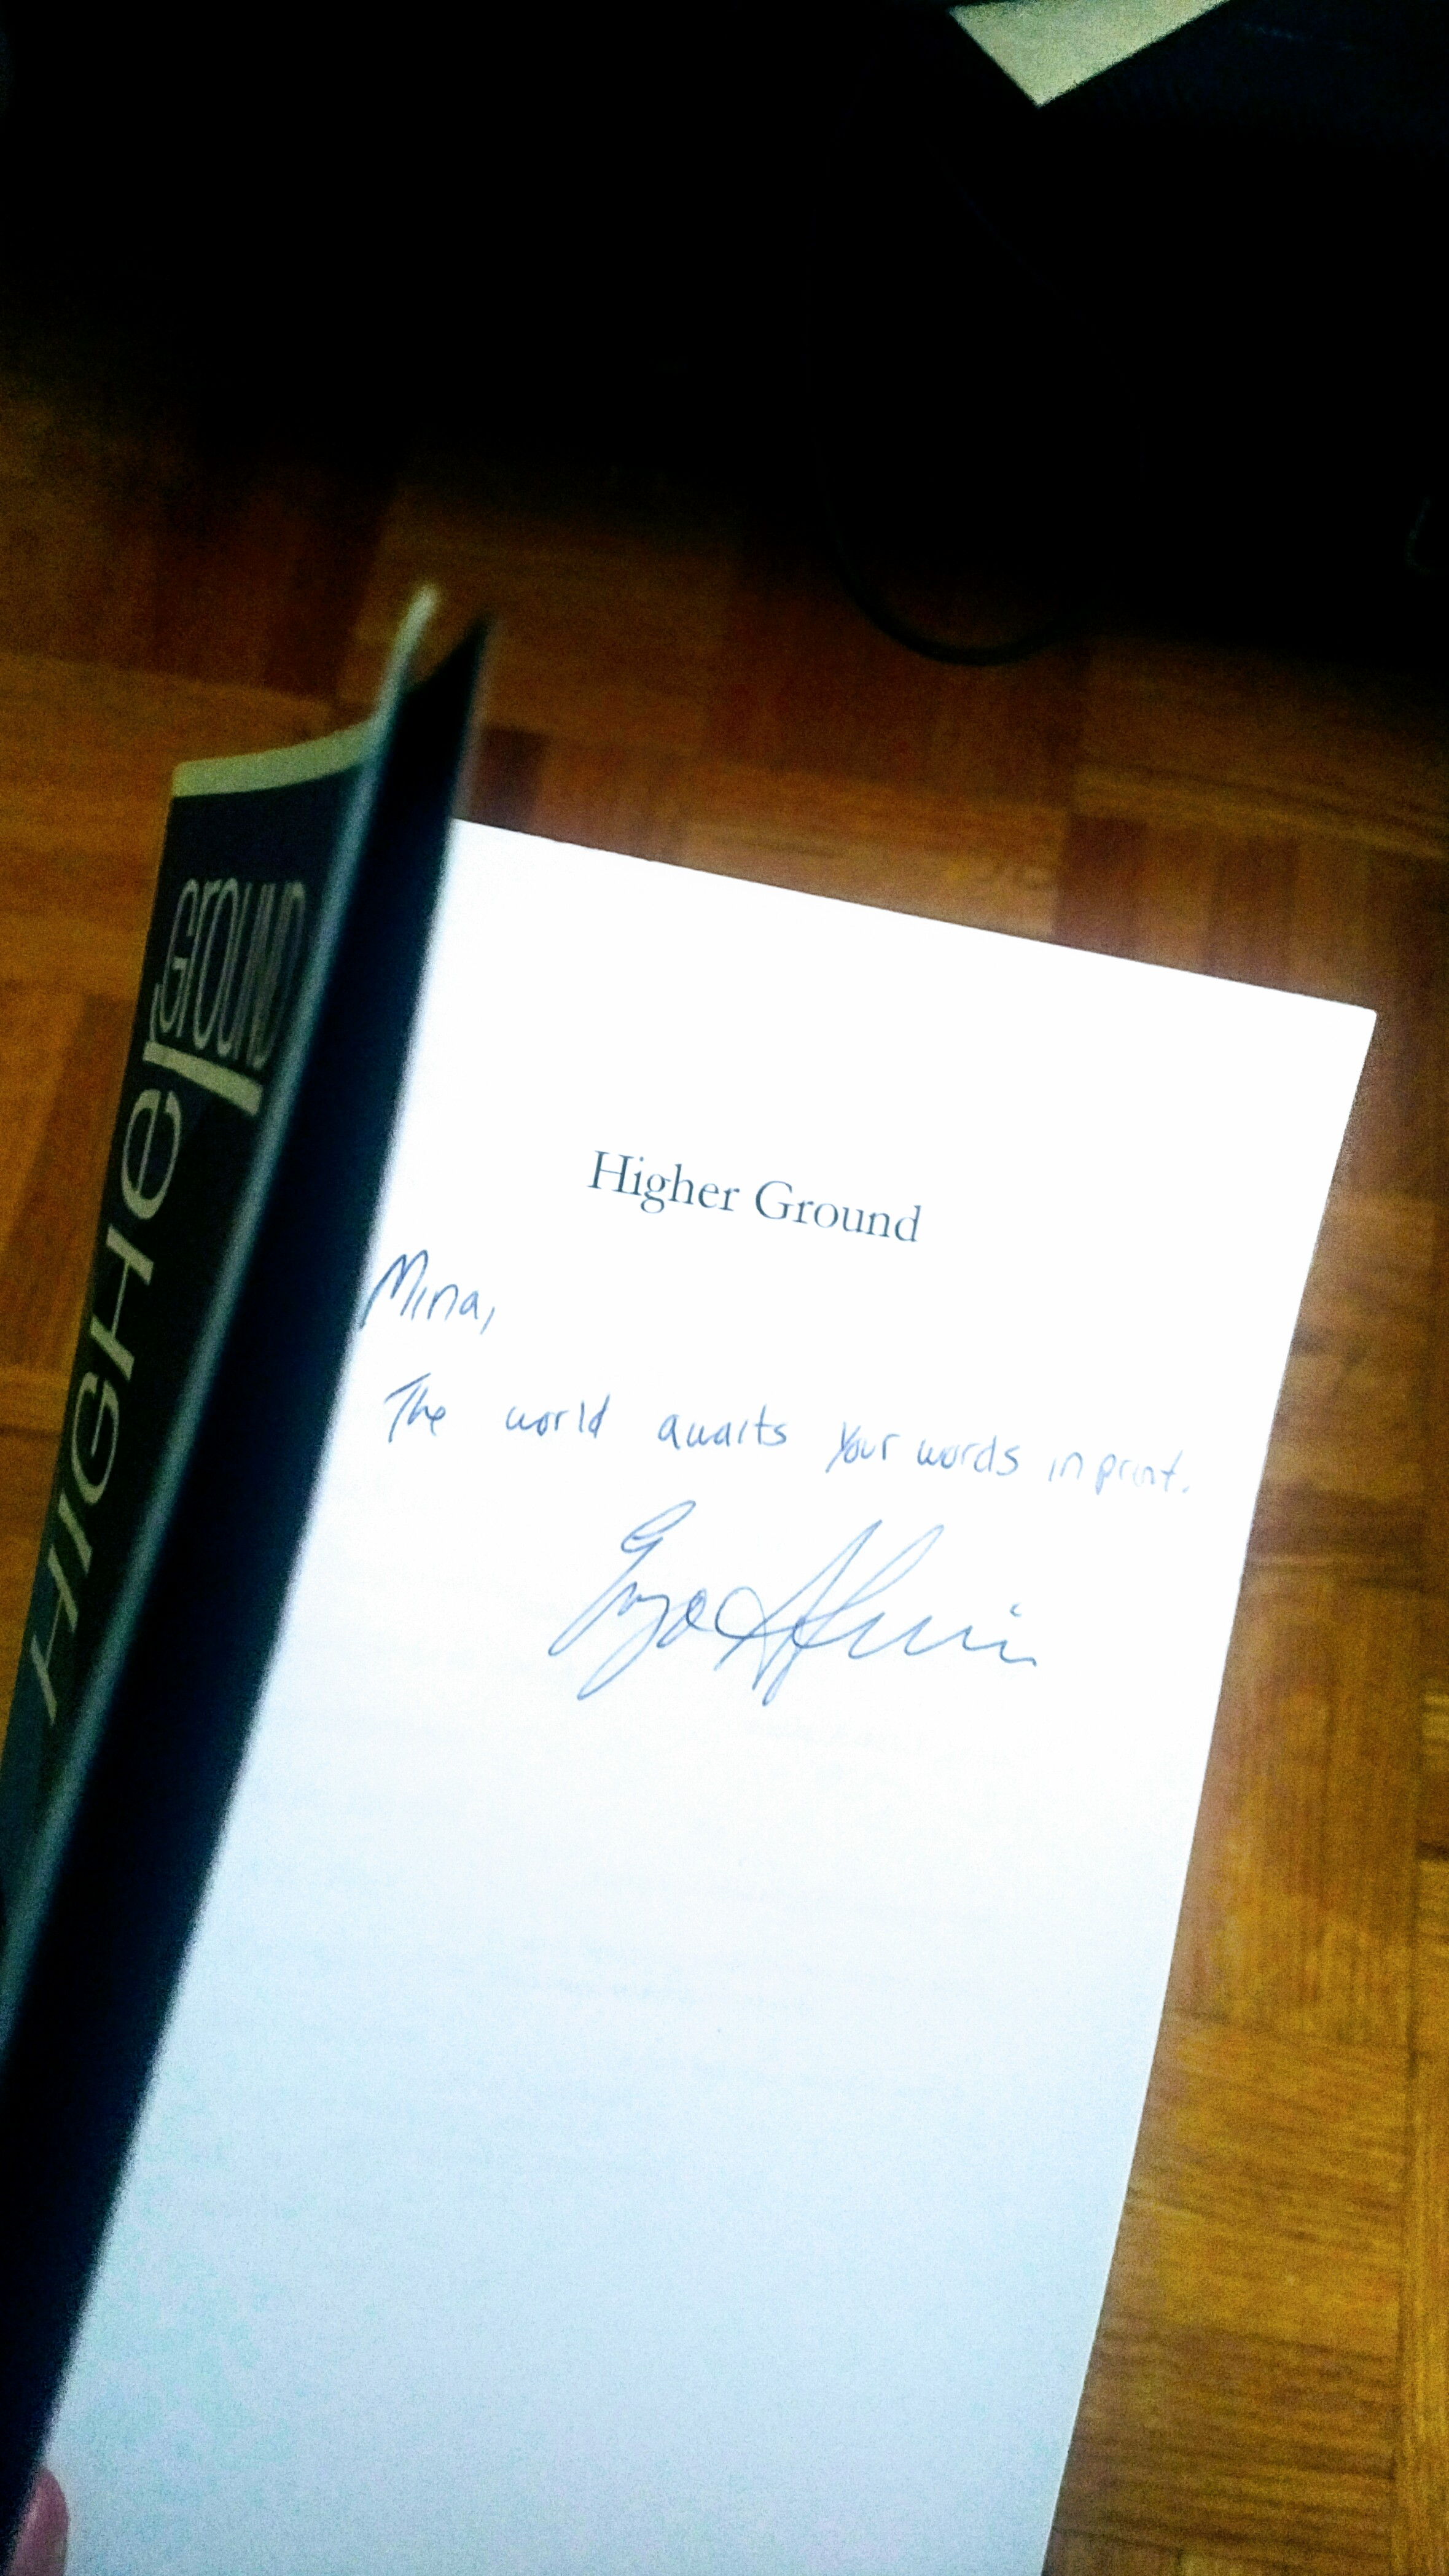 The signed copy of  Higher Groun  d  Enzo gave me in our final residency at Lesley University.